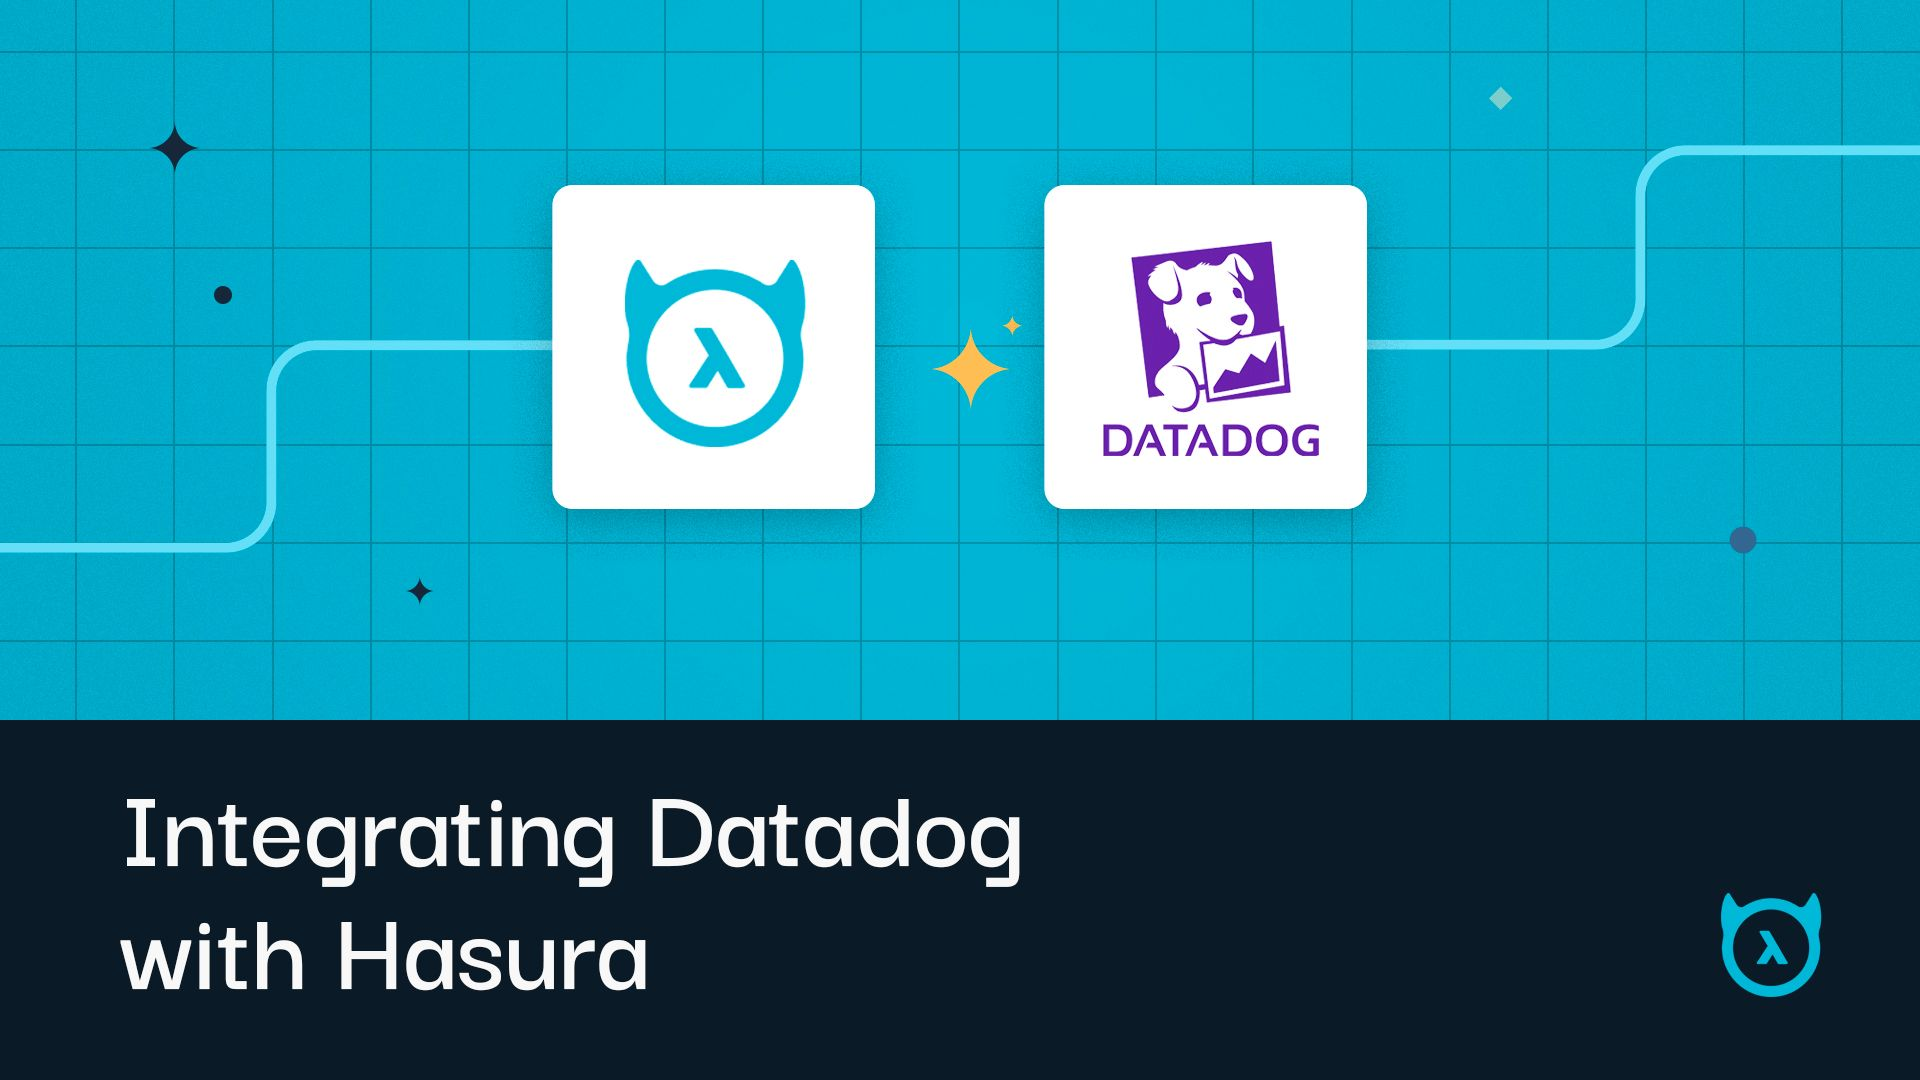 A guide to integrate Datadog to your Hasura Cloud project